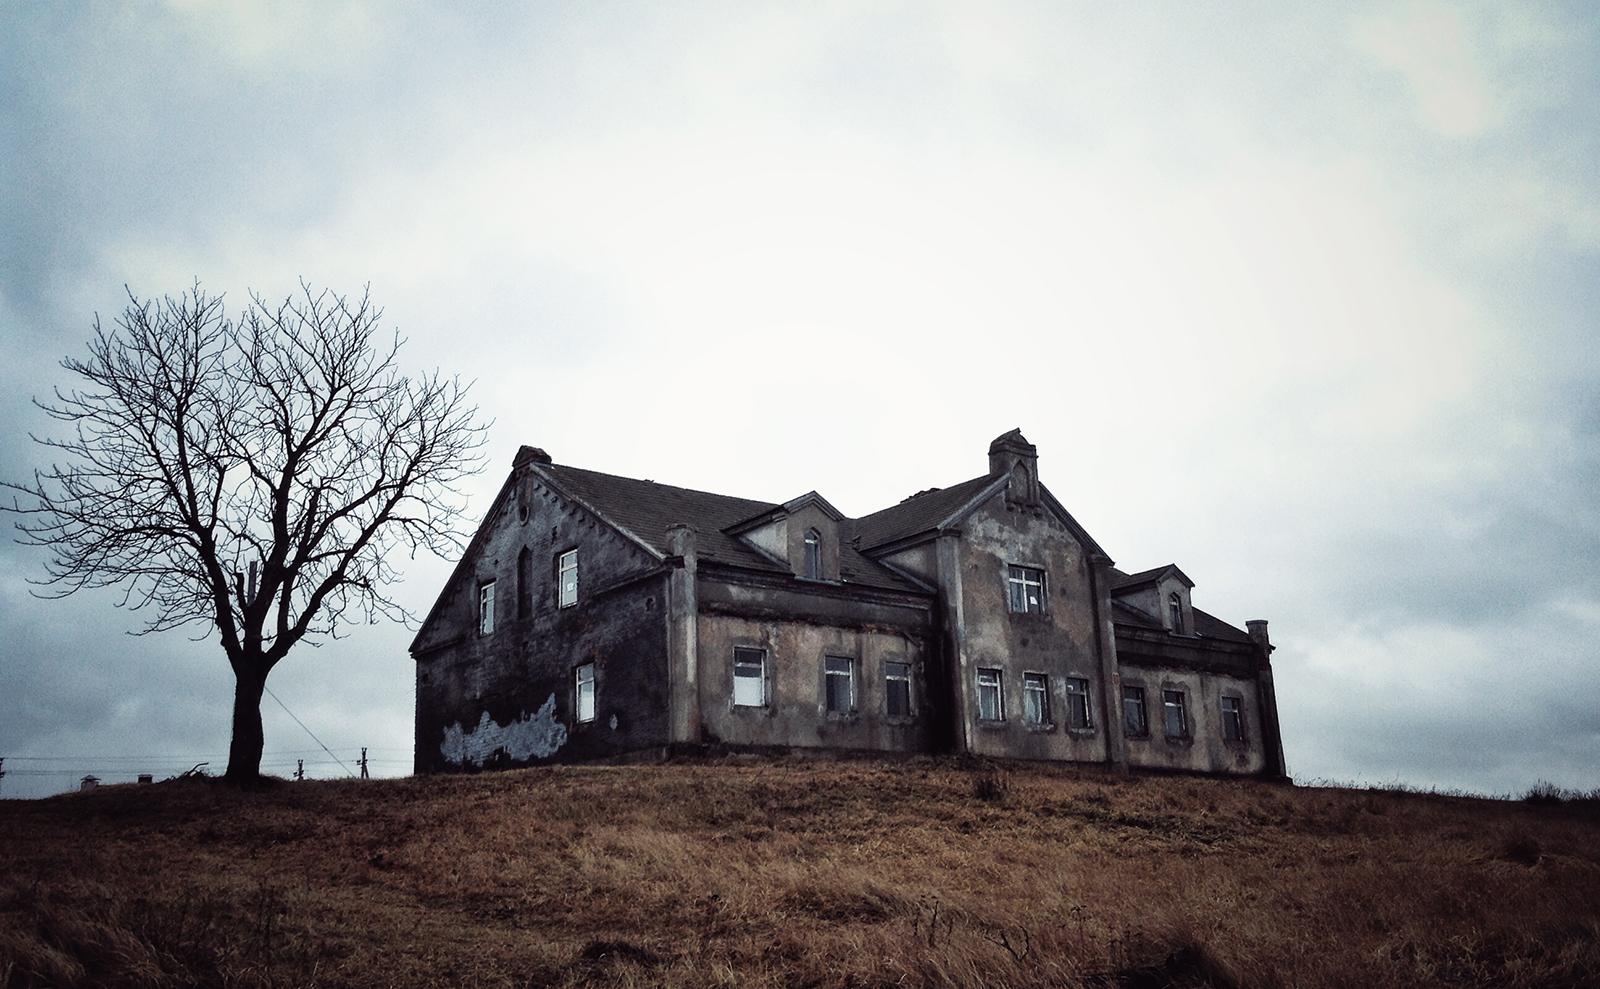 haunted house on a hilltop